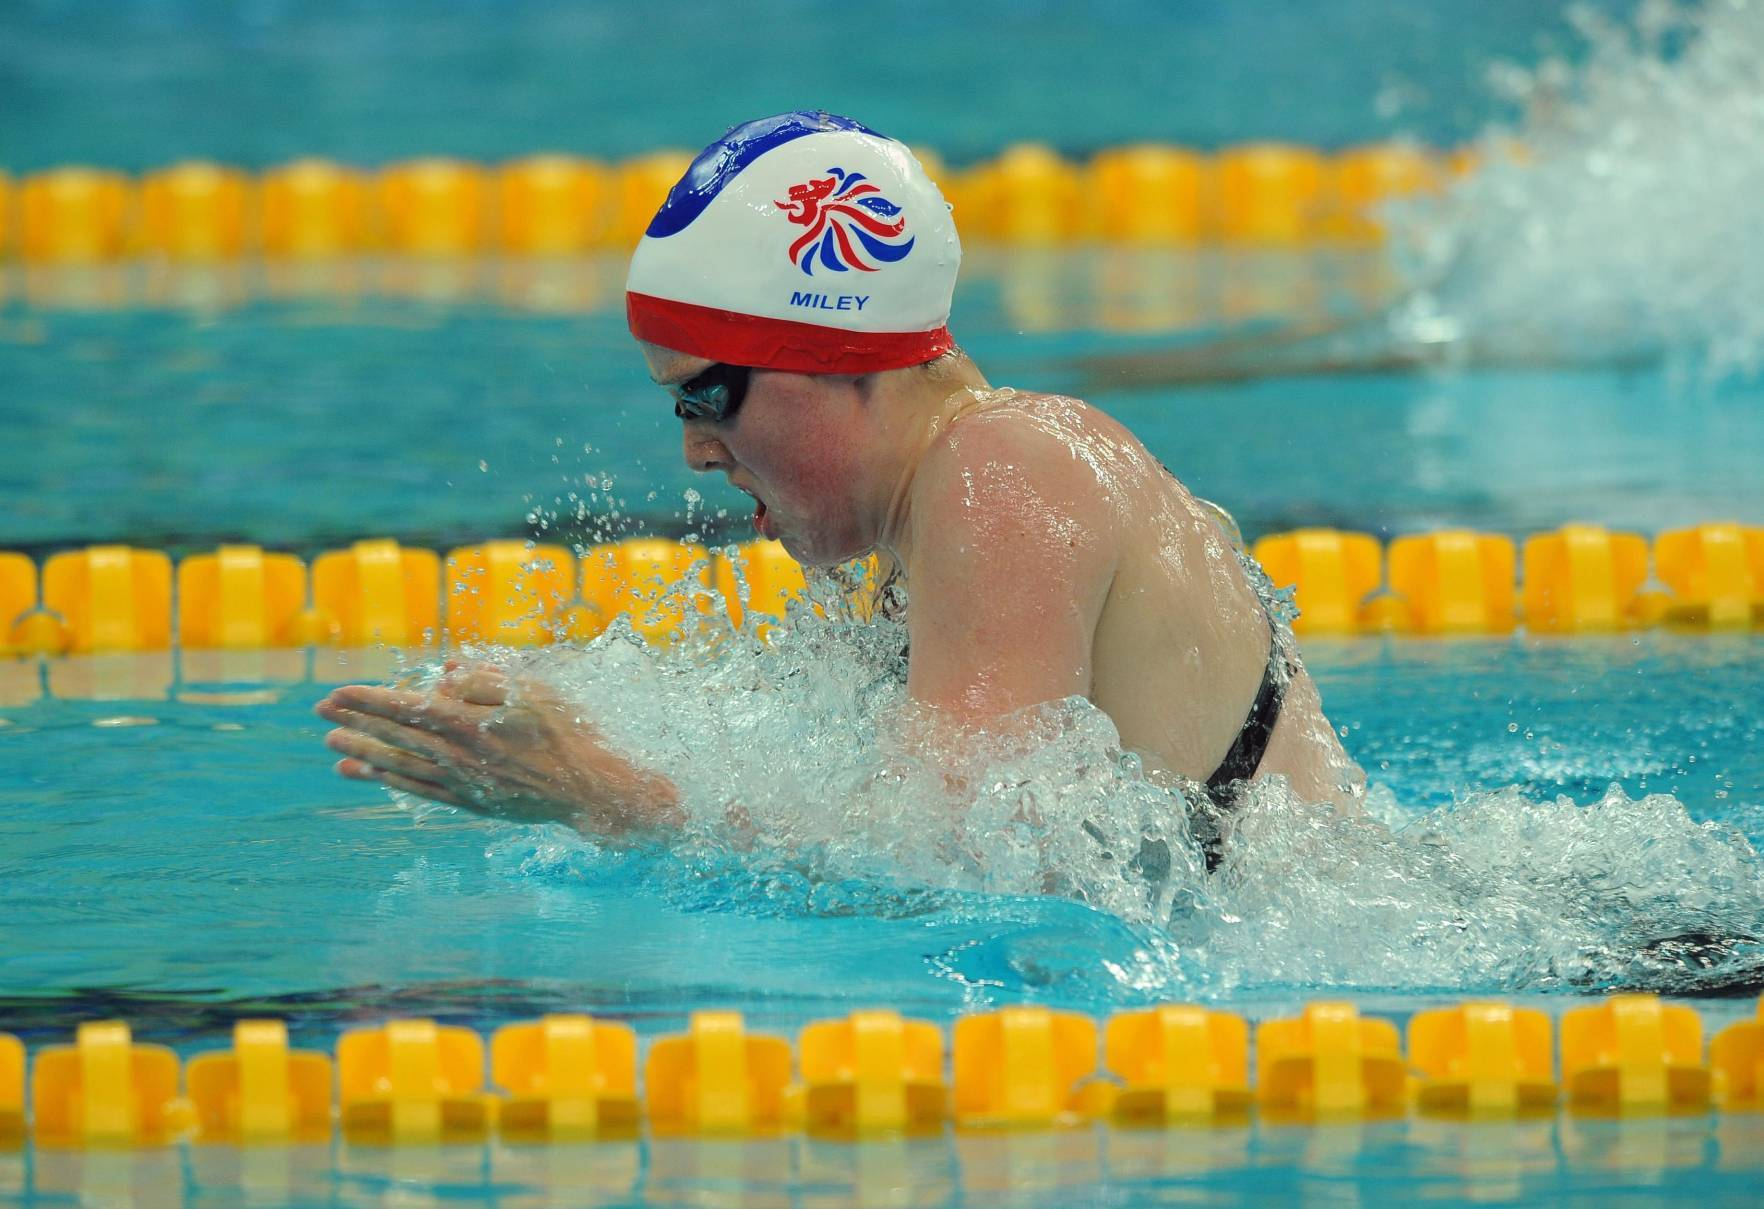 Great Britain's Hannah Miley in action at the National Aquatic Center in Beijing